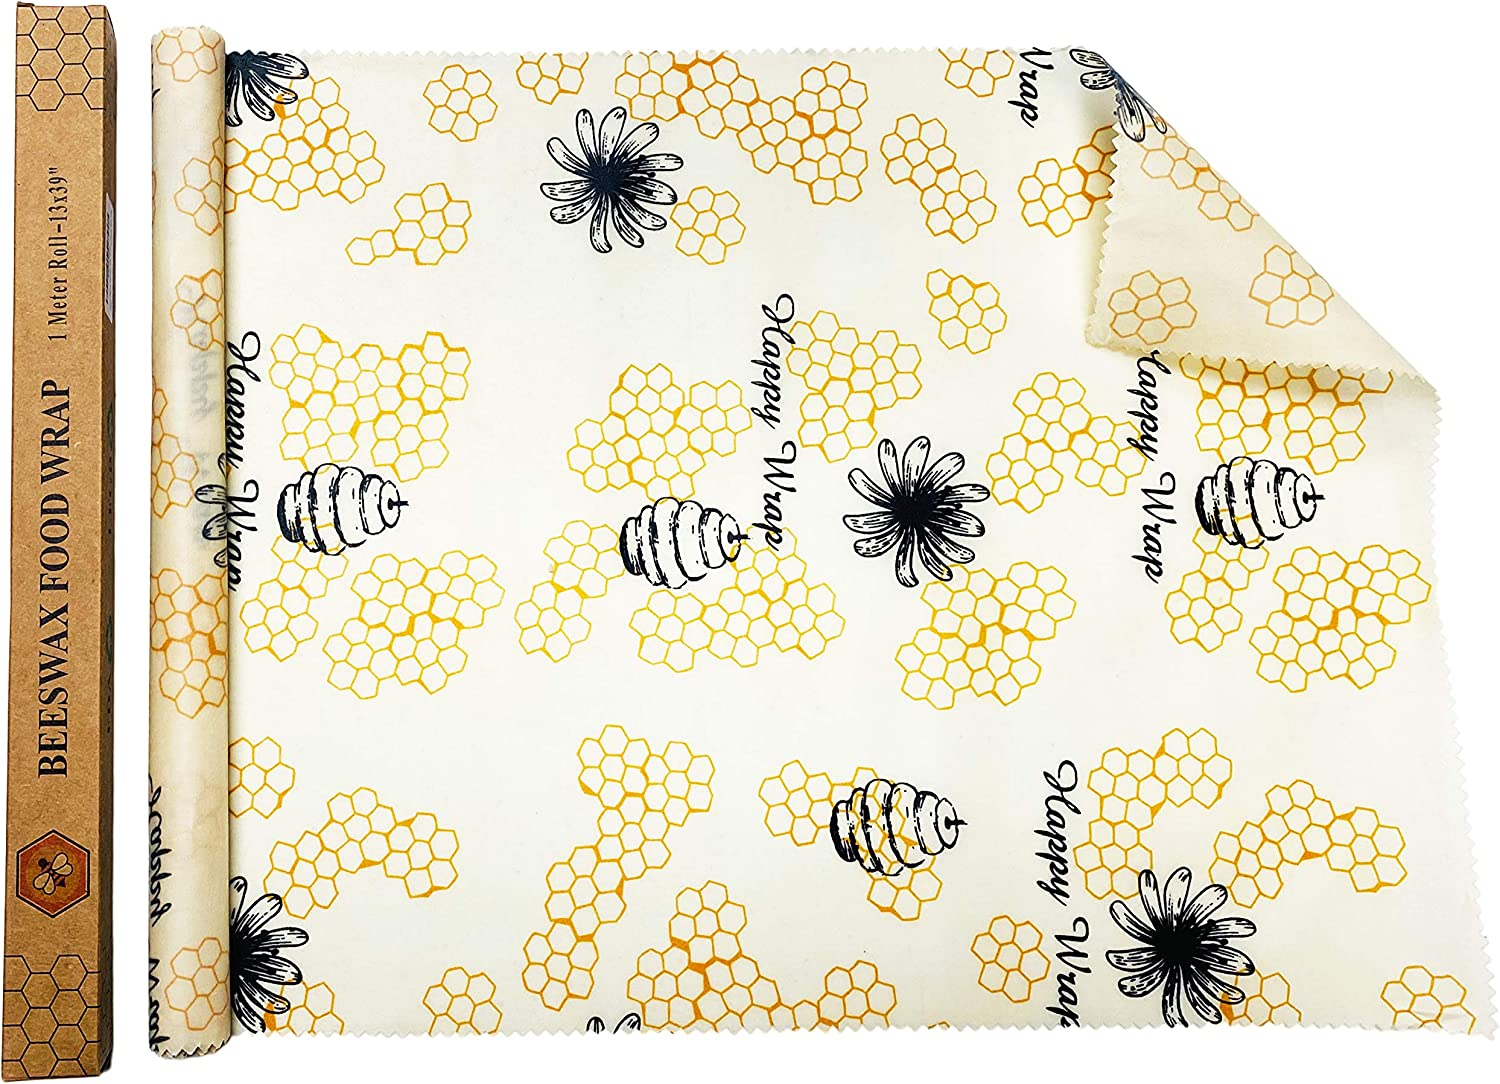 UGOS Organic Beeswax Food Wraps Roll - Reusable Bees Wax Paper Wrap (Happy Bees Roll)